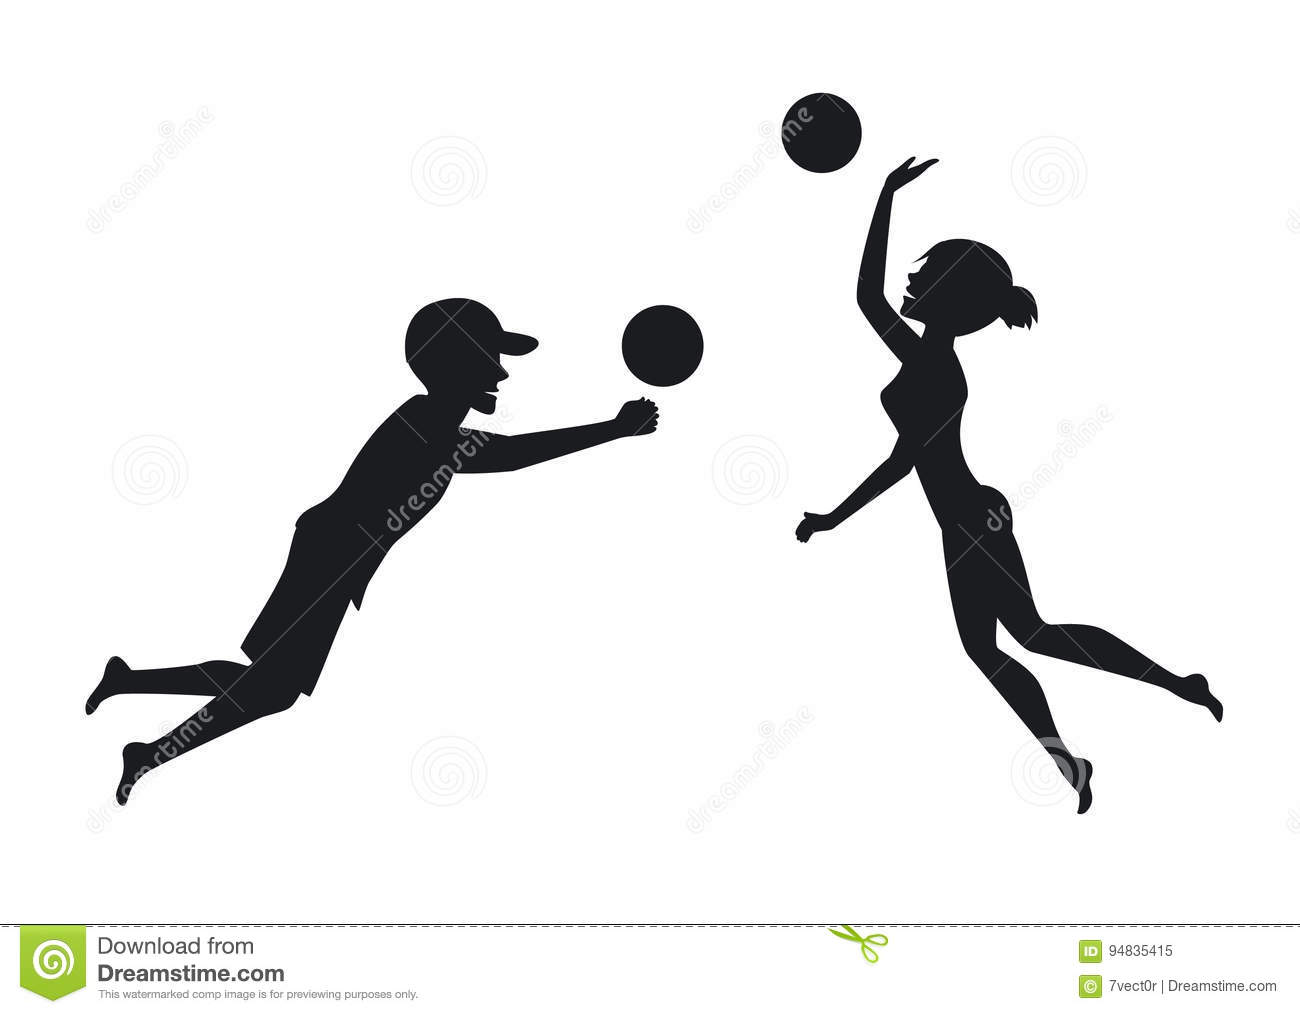 Illustration Abstract Volleyball Player Silhouette: Male And Female Beach Volleyball Players Stock Vector